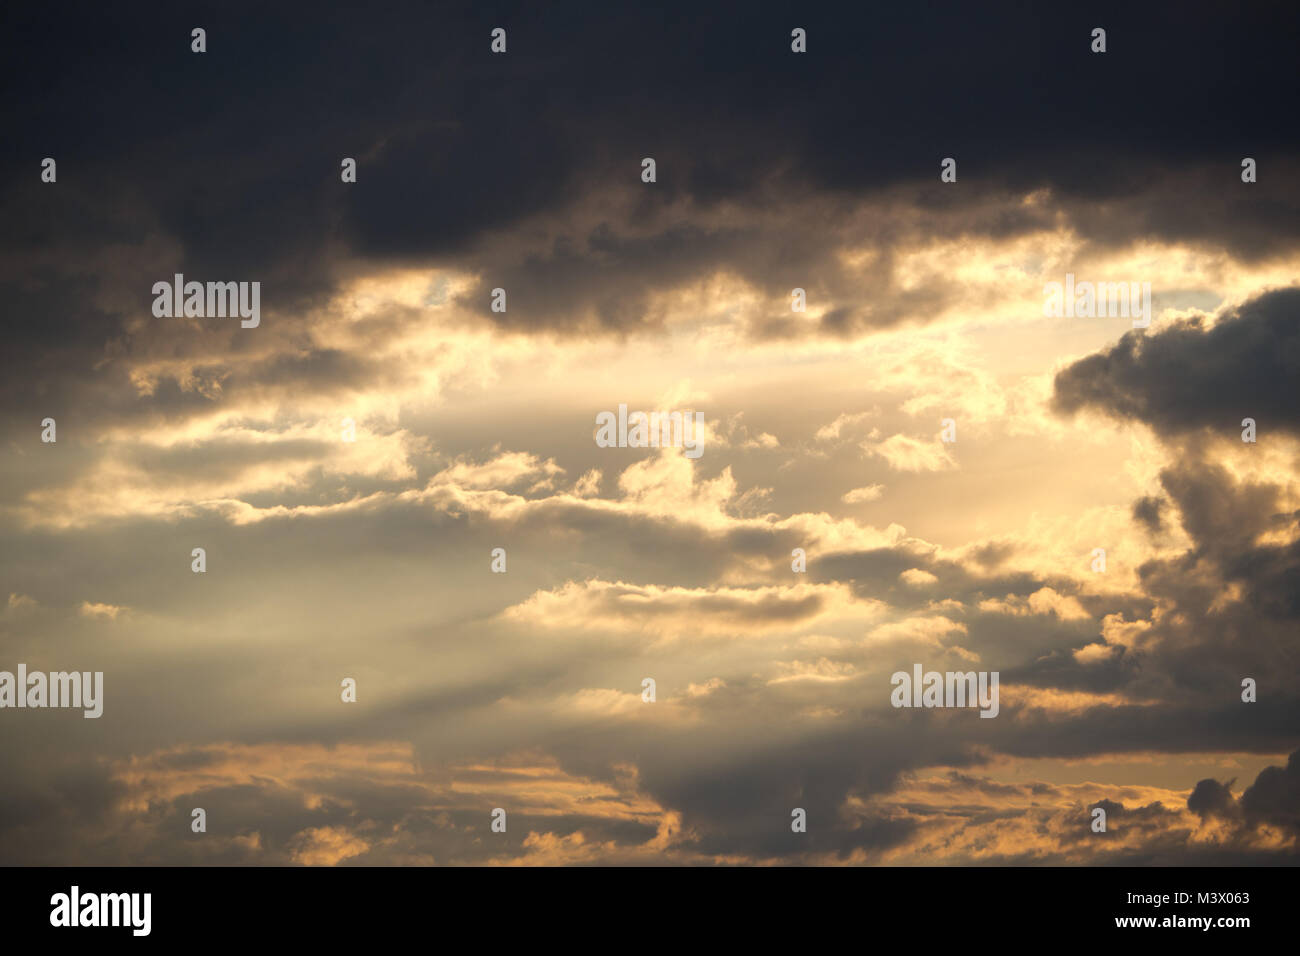 Sunset cloudy sky with sunlight gleams - Stock Image